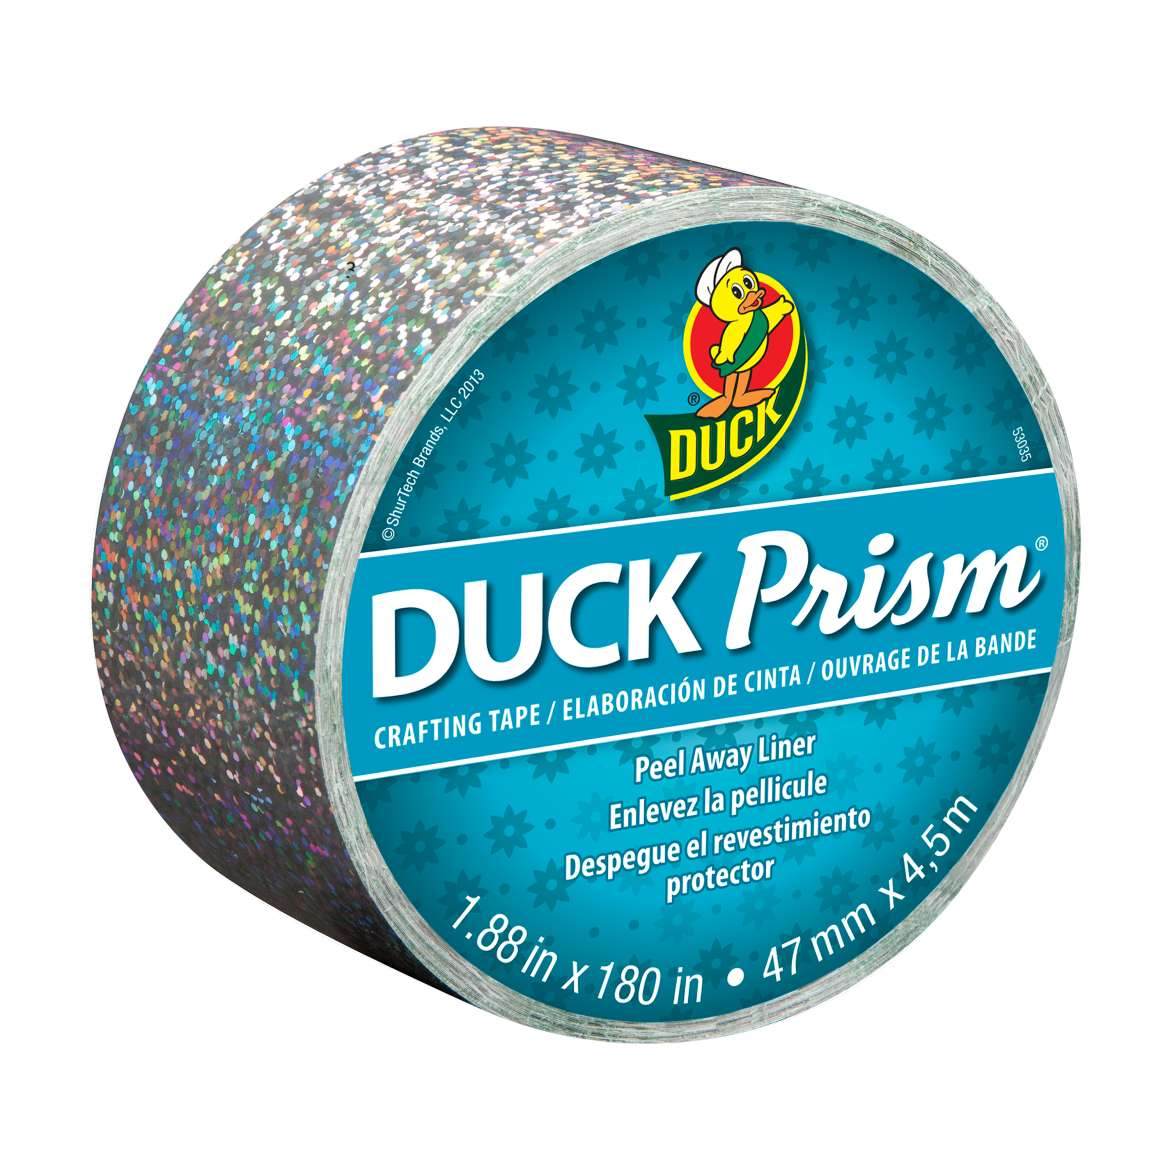 Duck Prism® Crafting Tape - Lots of Dots, 1.88 in. x 5 yd Image